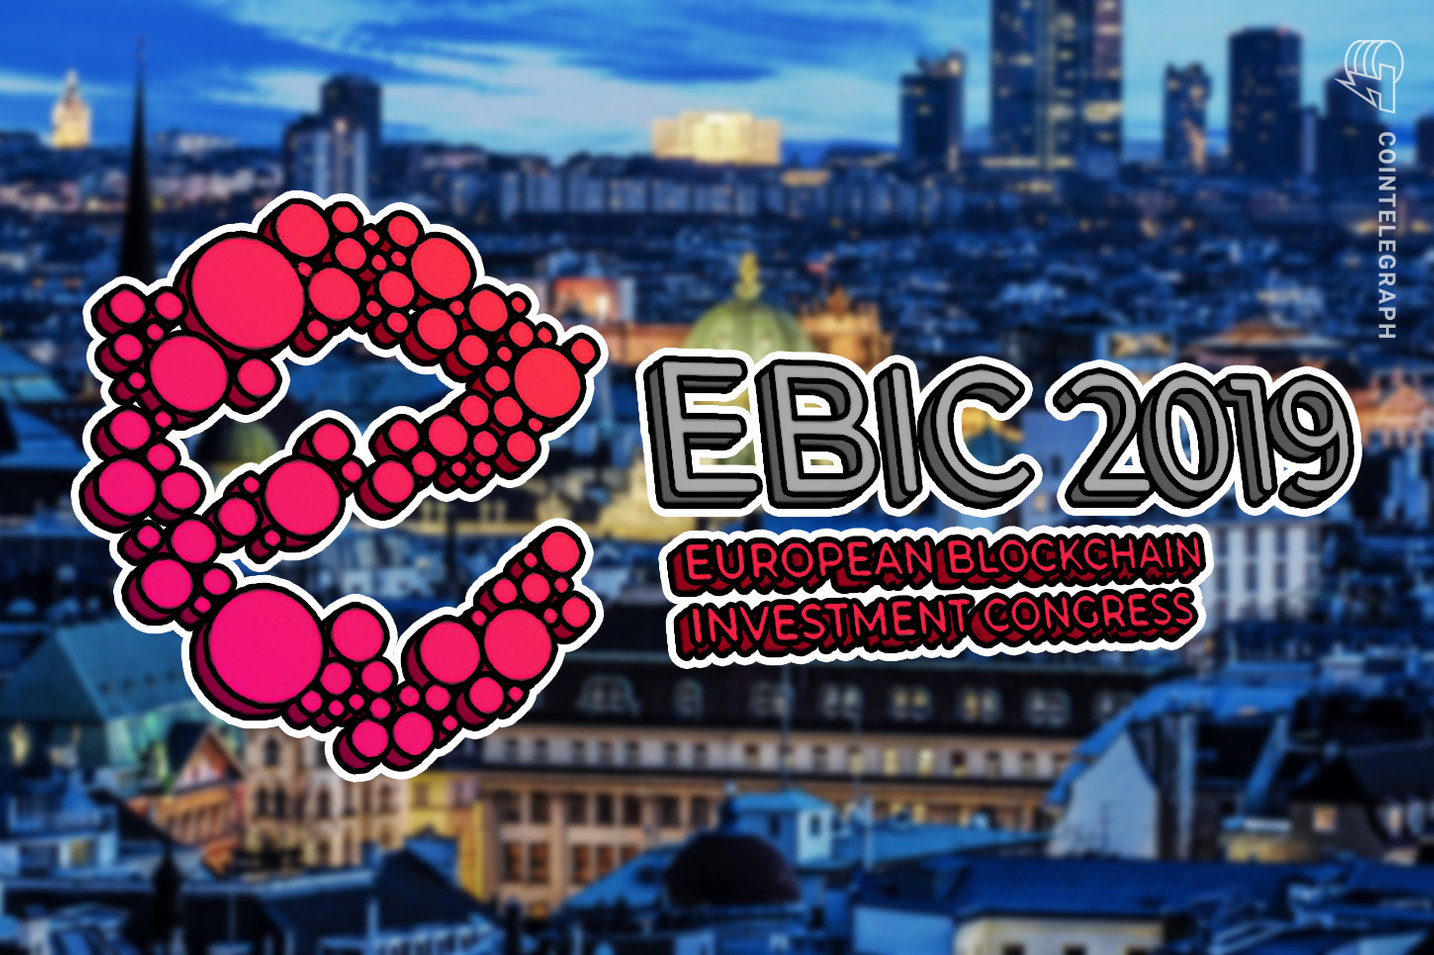 European Blockchain Investment Congress 2019 in Wien: Mit Insider-Knowhow in die Blockchain-Zukunft